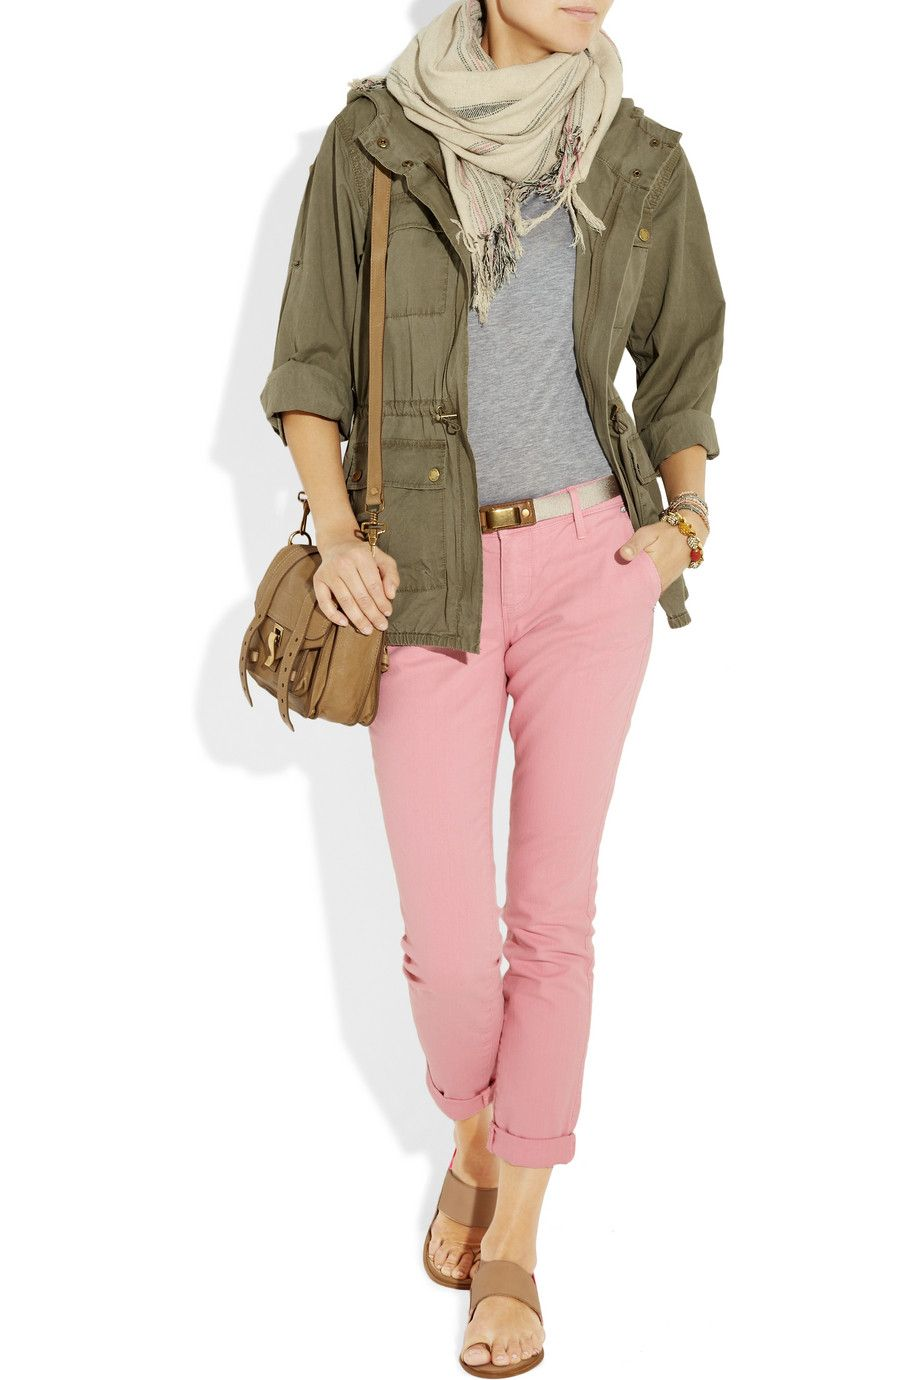 0f2420fd7b2 Amazing early spring outfit. | Style is a way to say who you are ...